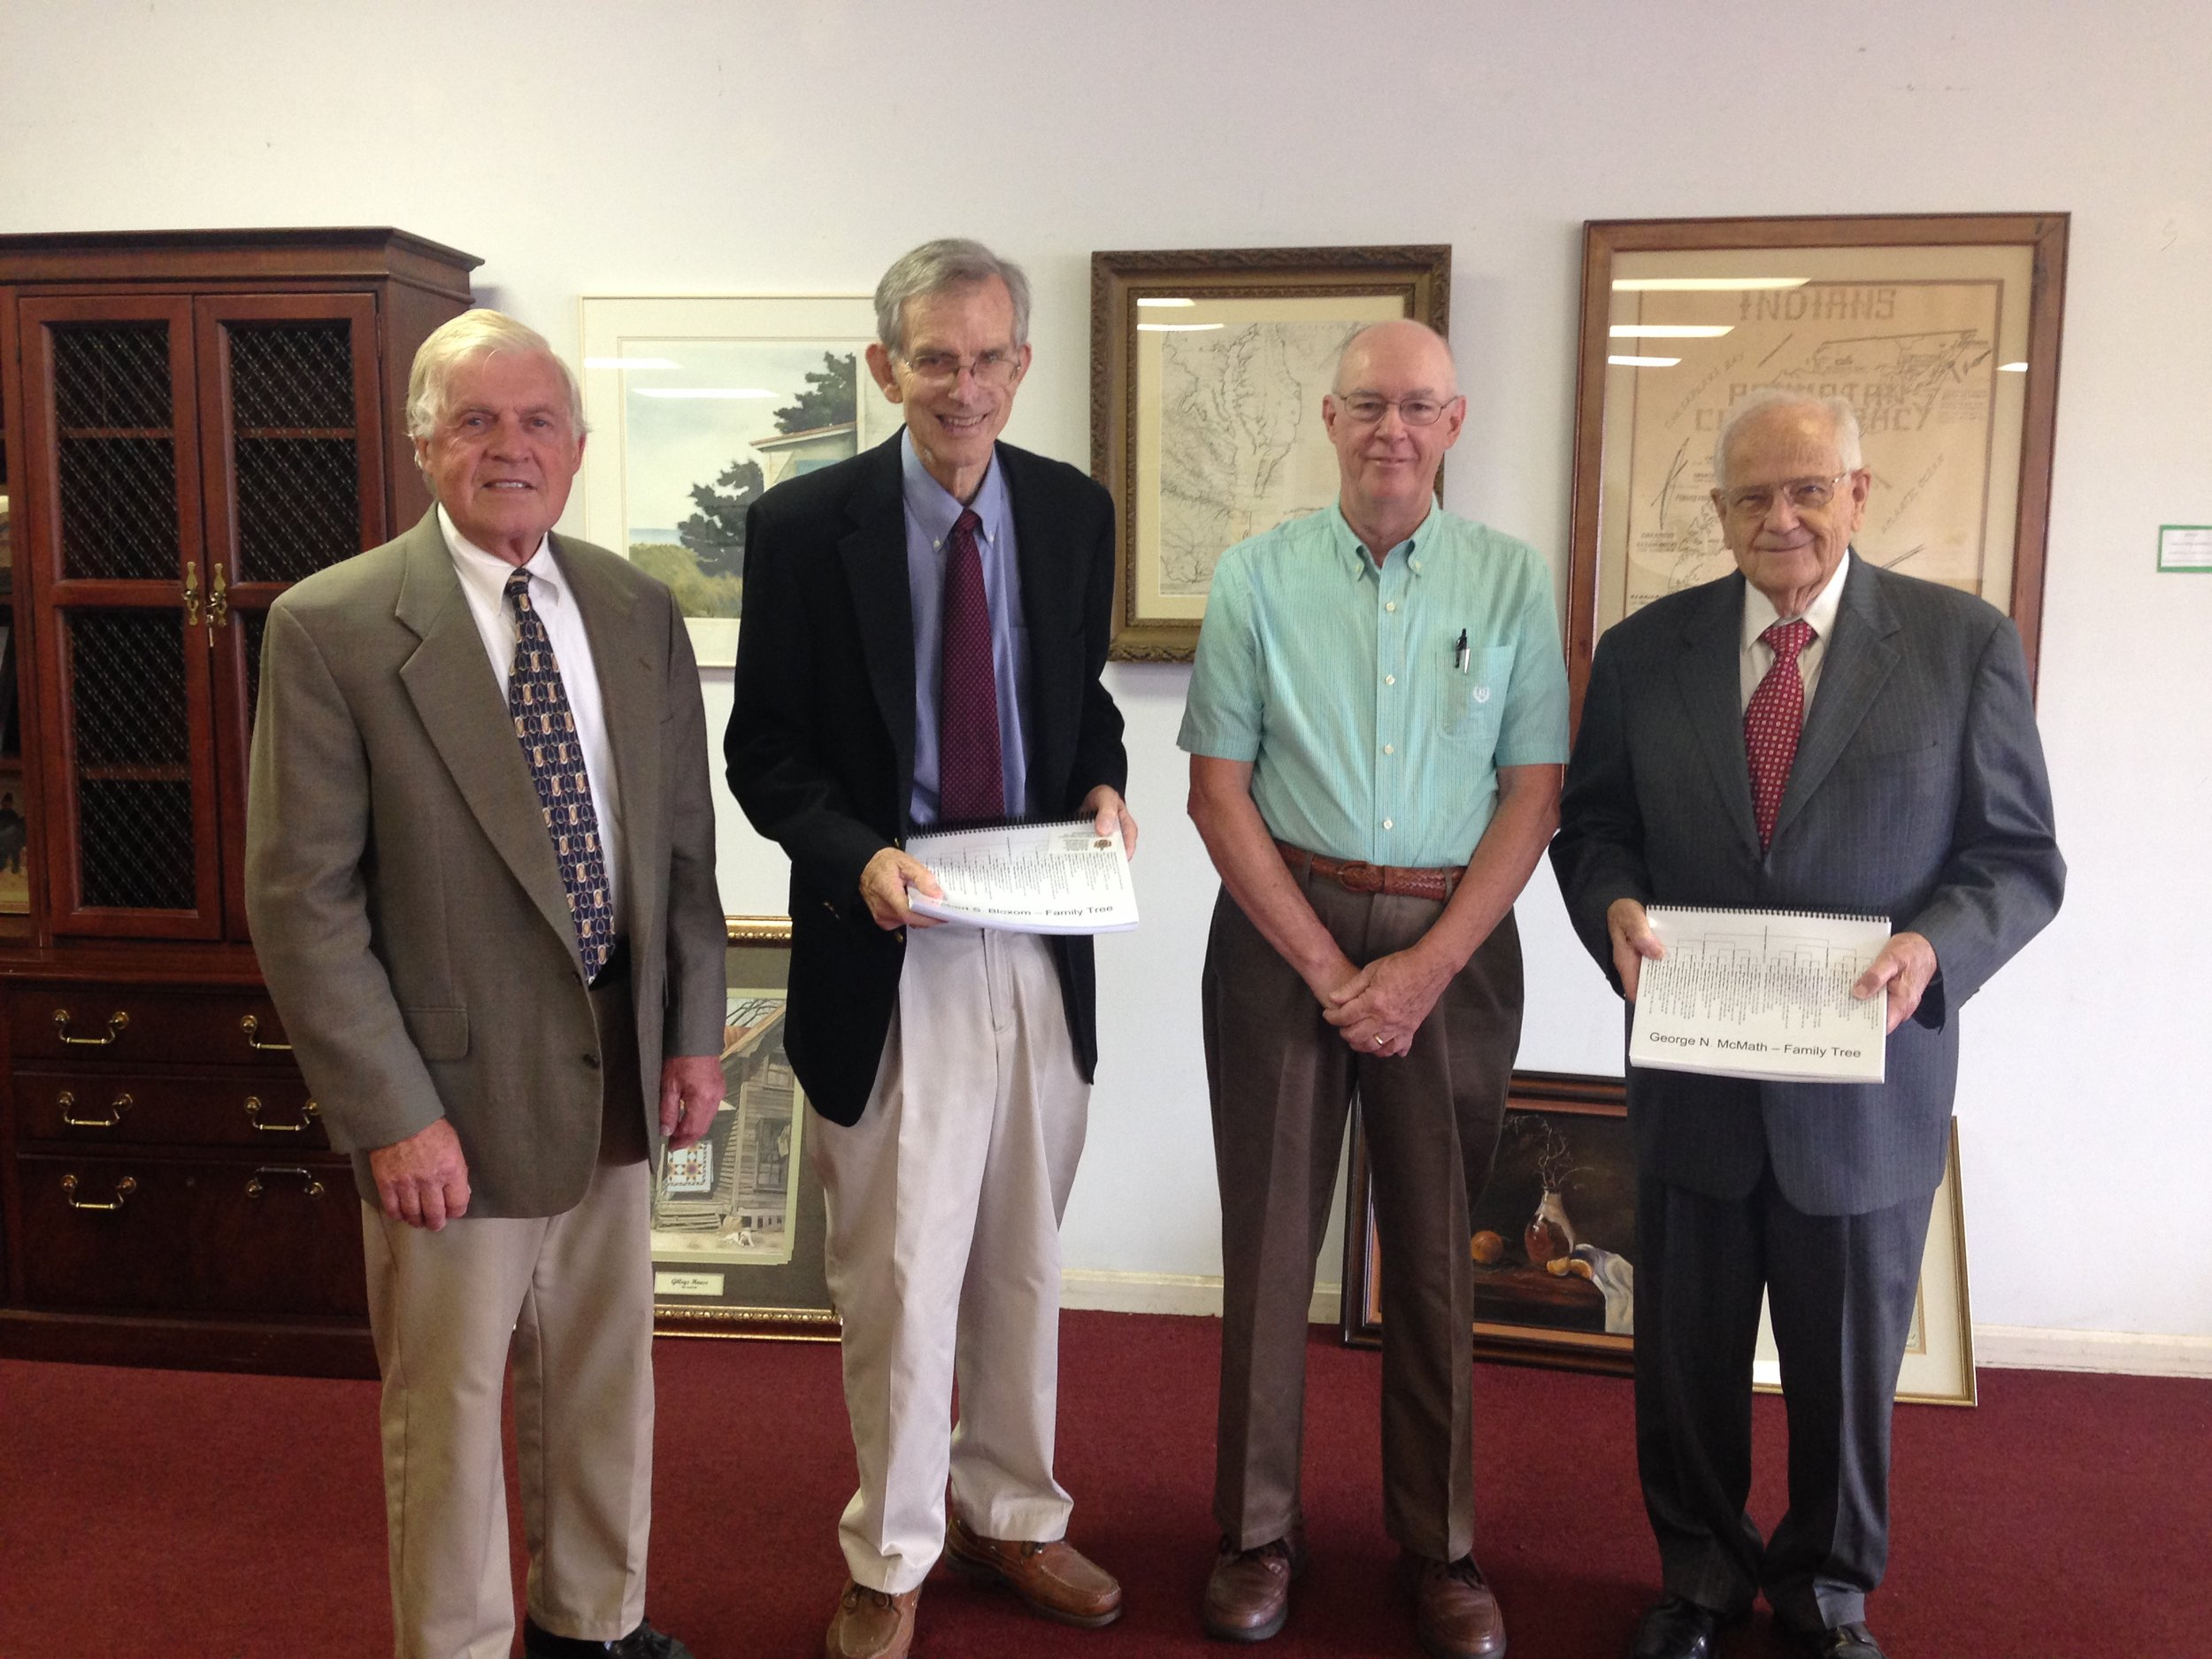 """Photo attached: Left to right: Fitz Godwin, Chairman of ESPL Foundation Capital Campaign's first phase, Honorable Bob Bloxom, M.K. """"Moody"""" Miles, and Honorable George McMath, and are pictured. Miles presented Bloxom and McMath with their family history in appreciation for their support of the first regional library."""